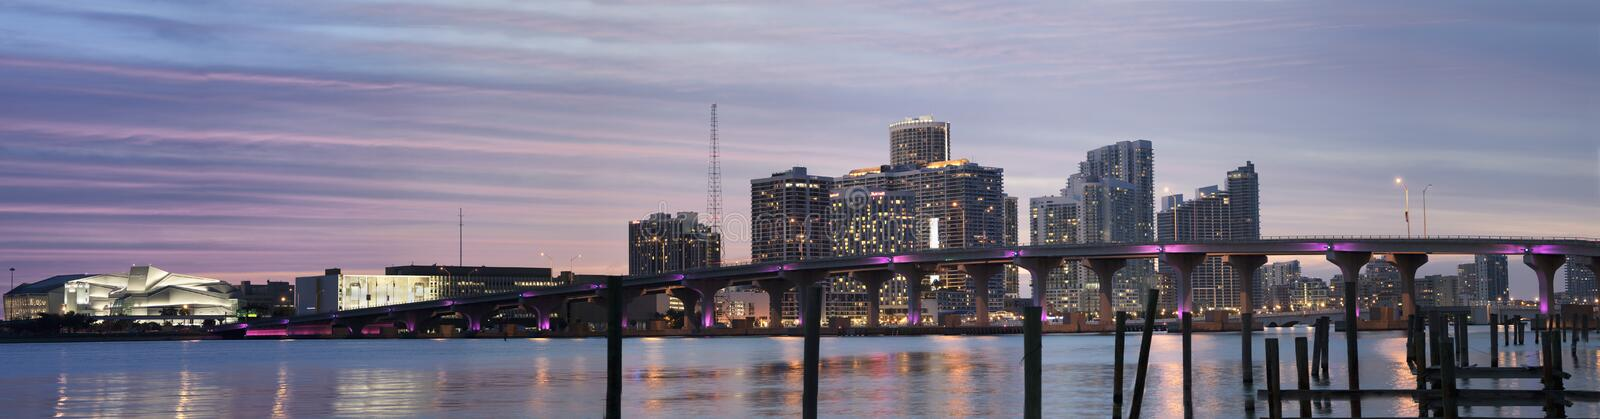 Miami Skyline At Dusk stock images